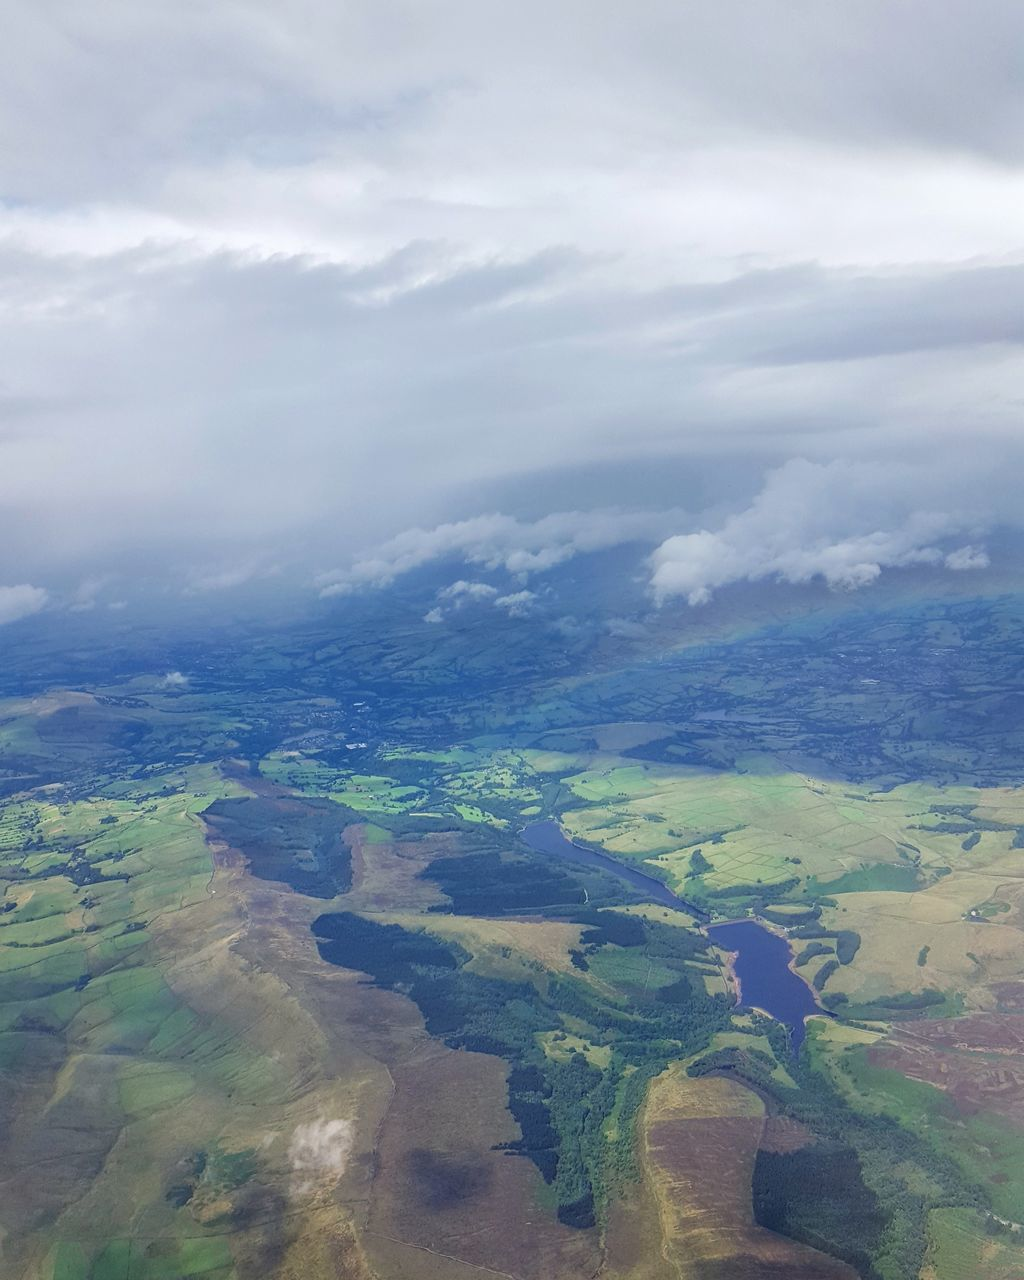 aerial view, scenics, landscape, beauty in nature, agriculture, tranquil scene, nature, cloud - sky, tranquility, rural scene, outdoors, no people, patchwork landscape, day, sky, travel destinations, view into land